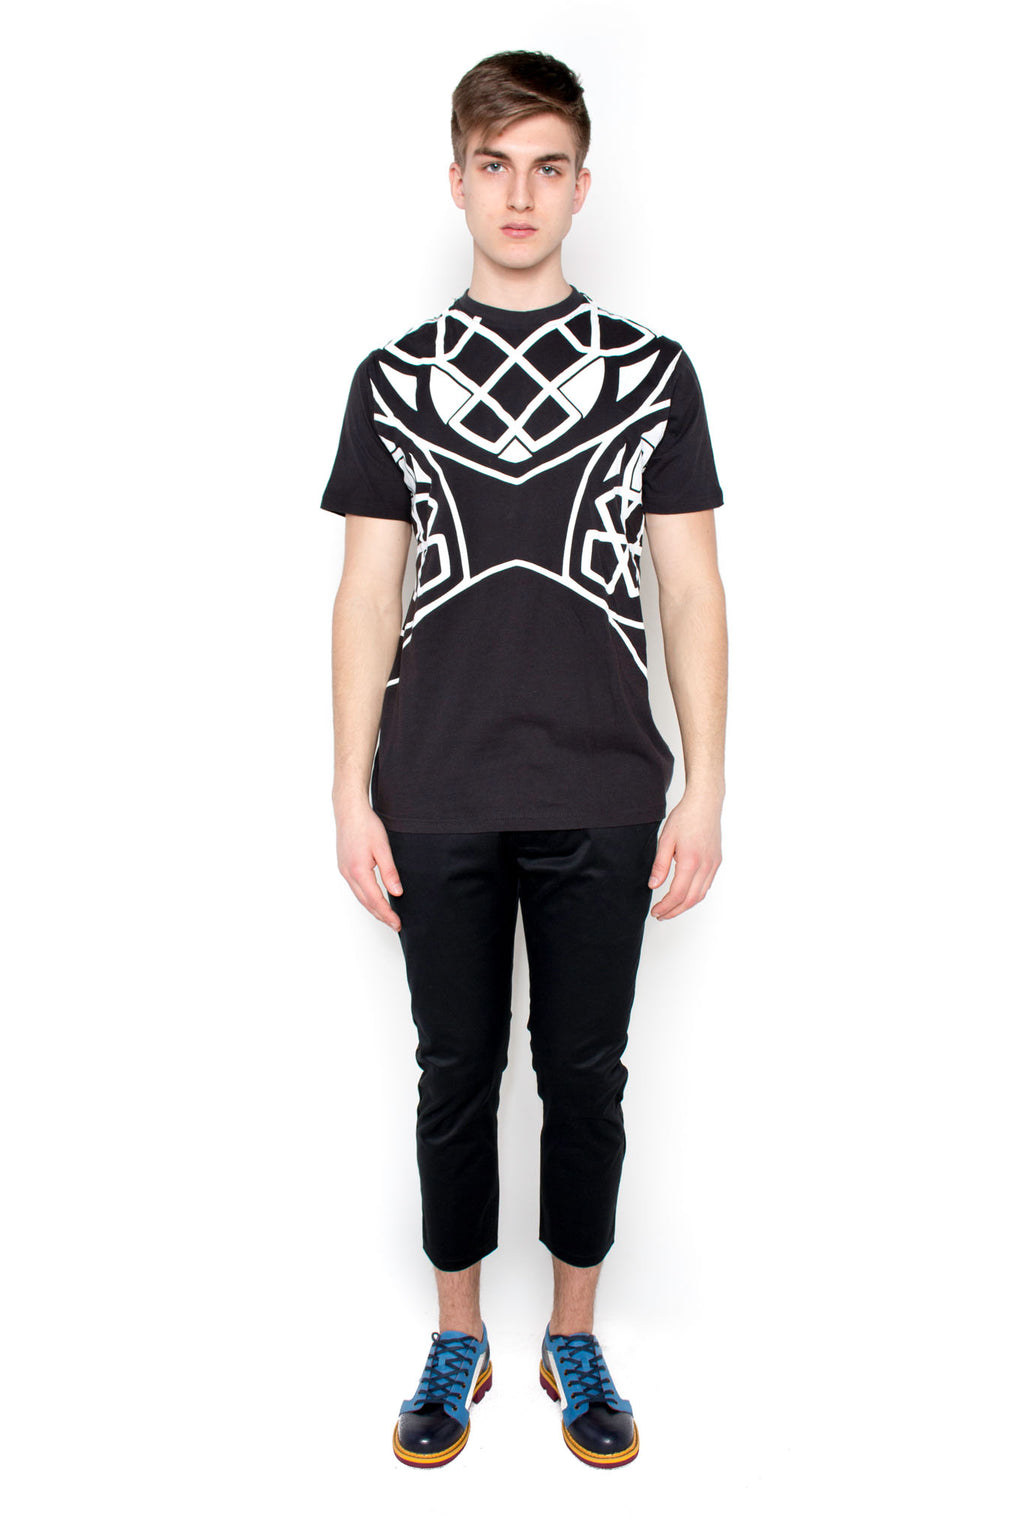 Graphic T-shirt (black)